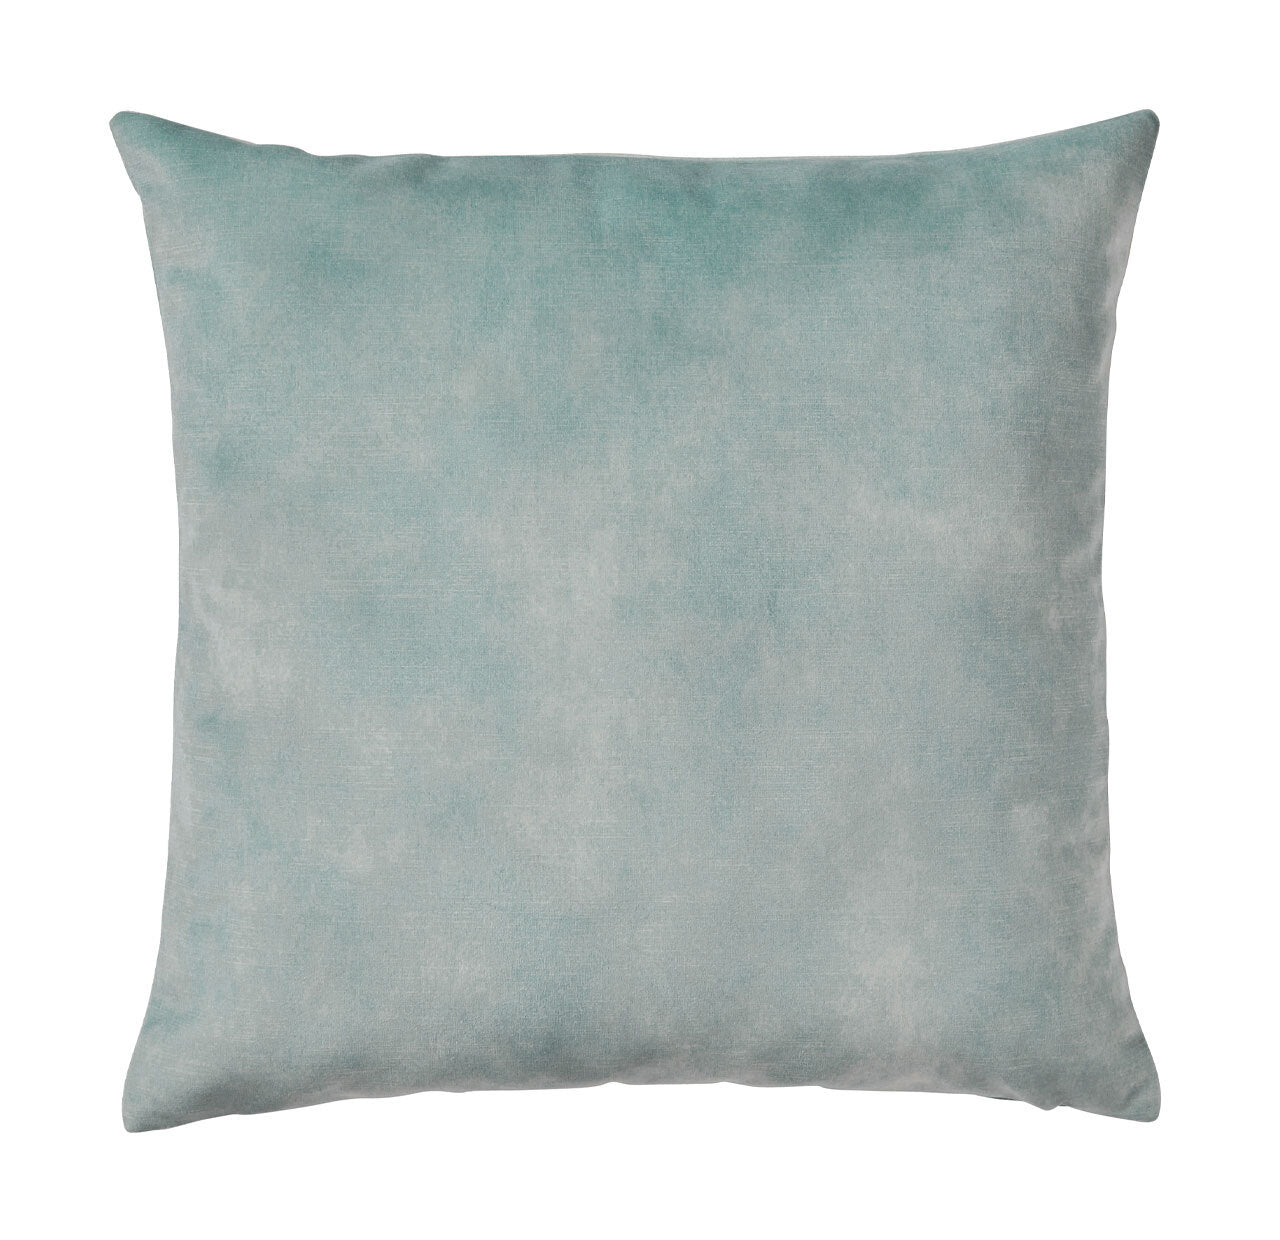 Lovely velvet cushion - Powder